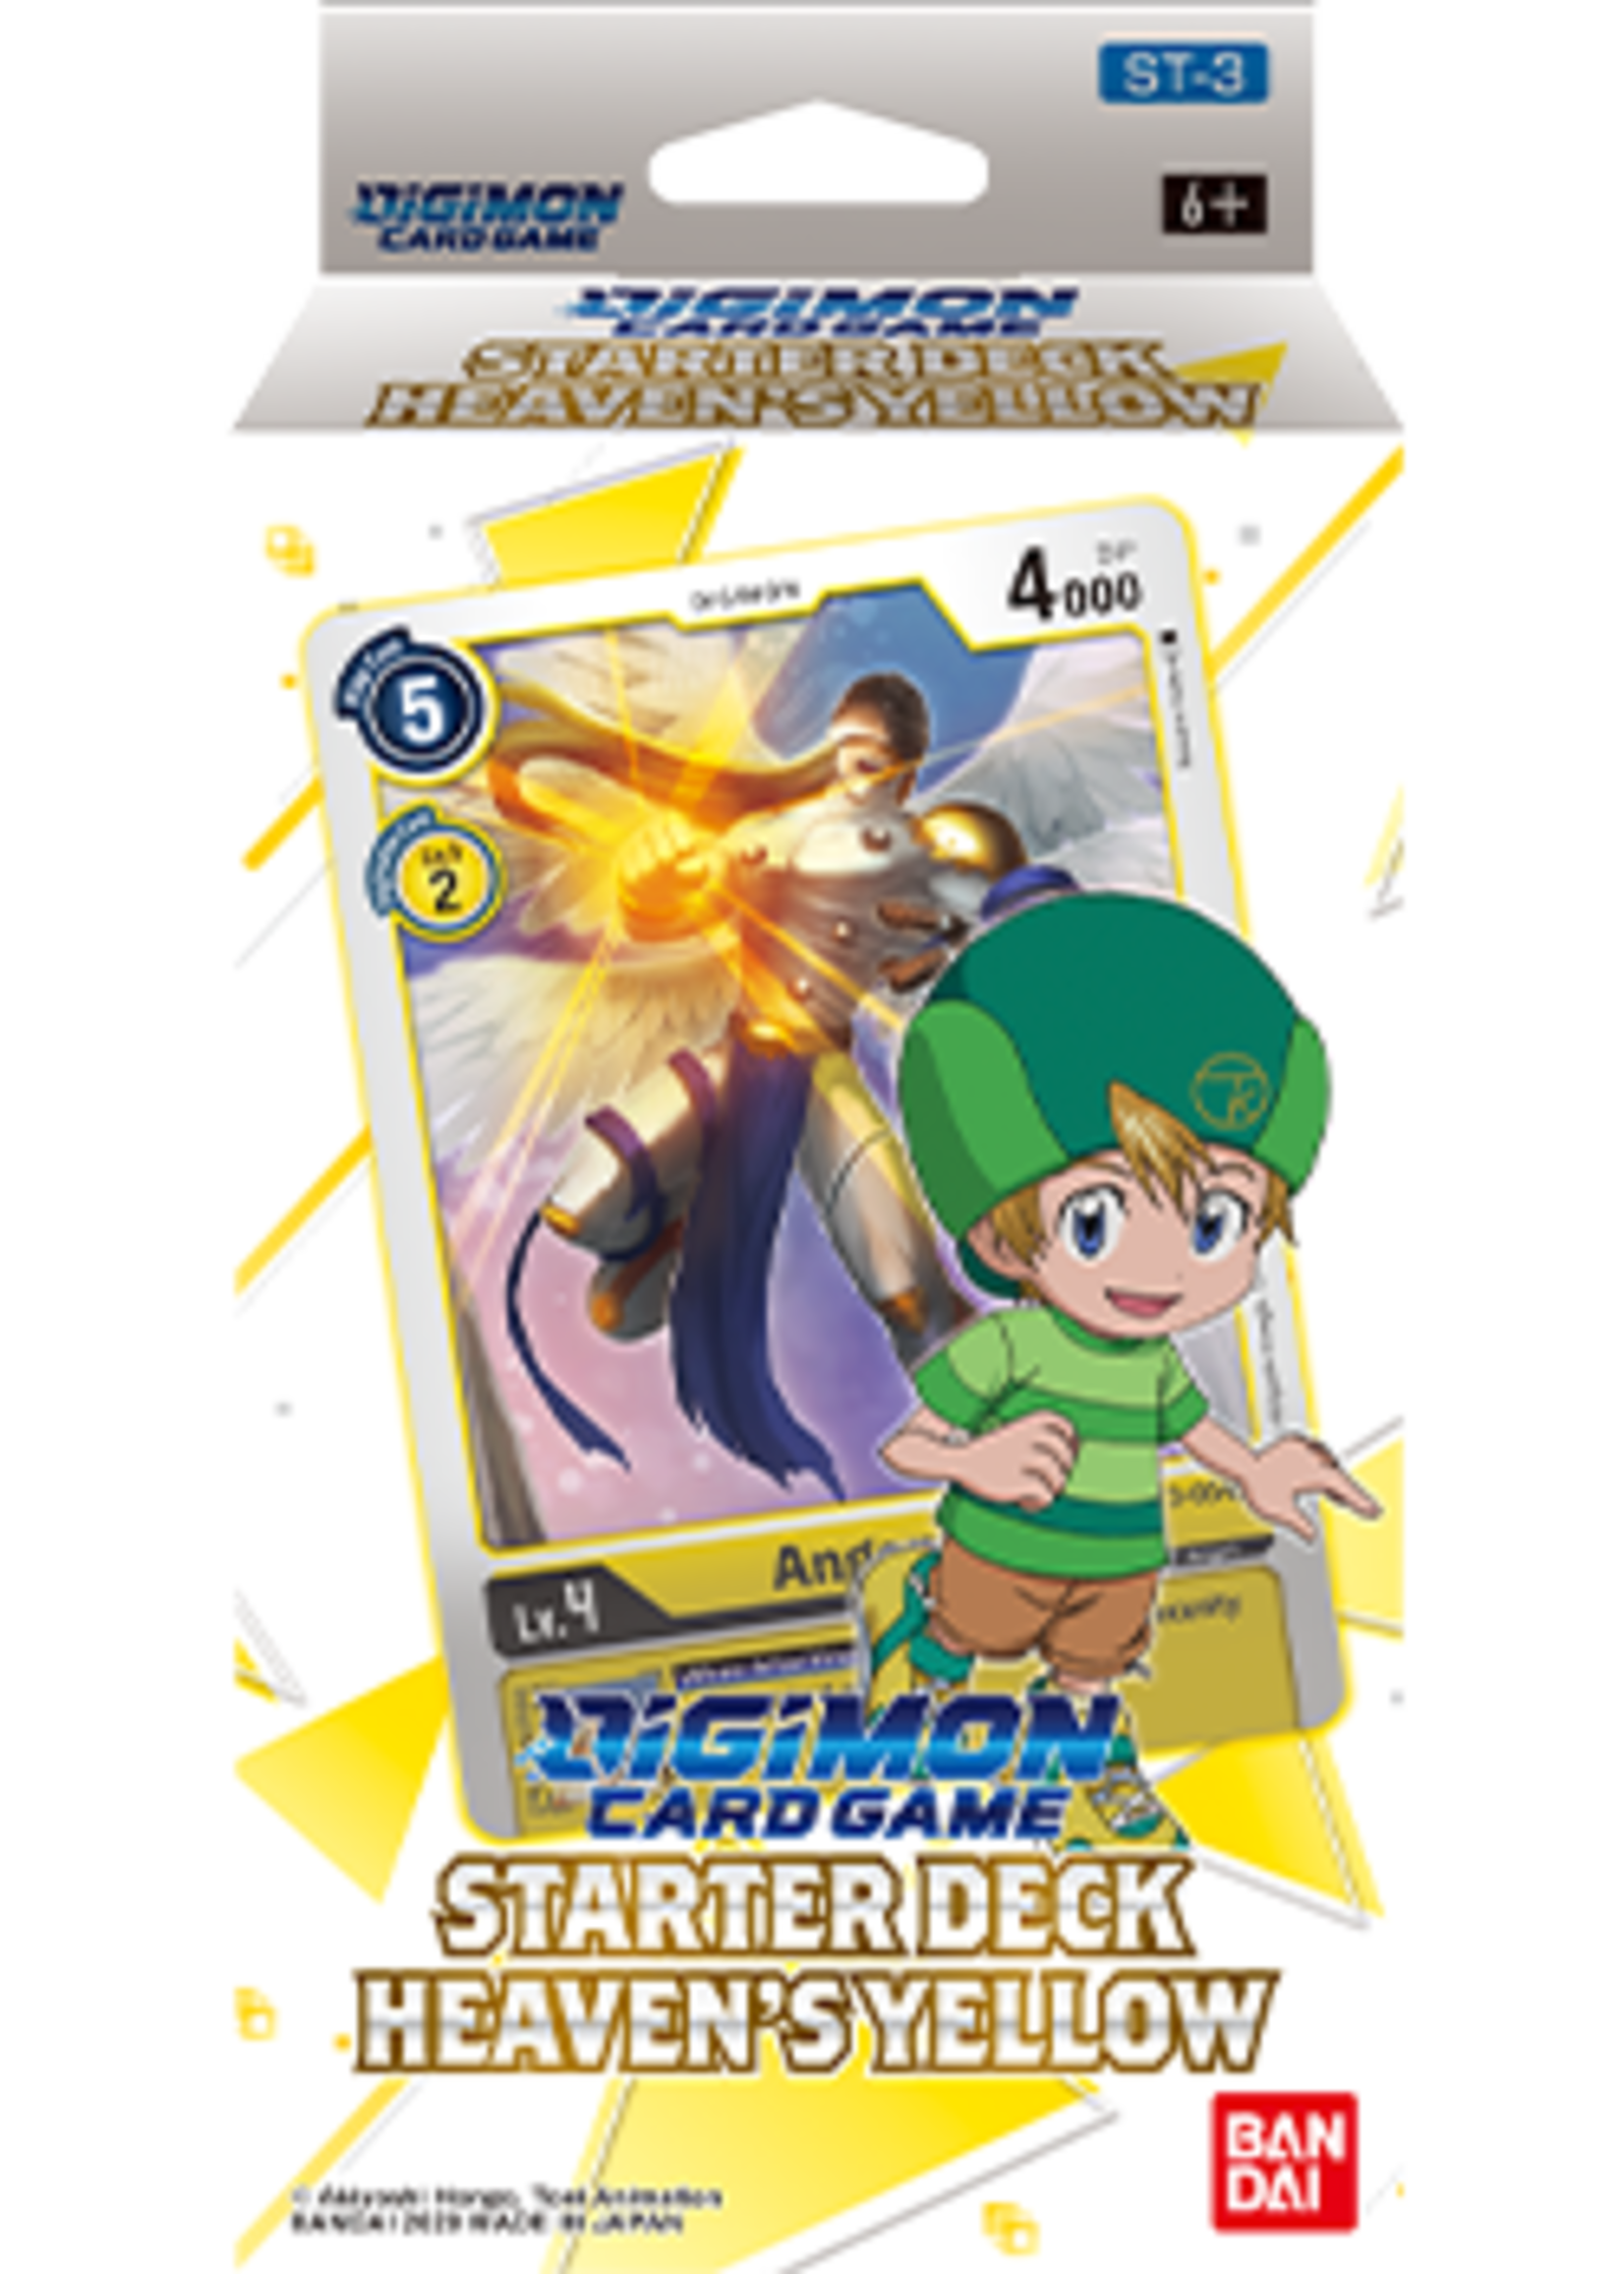 Digimon Card Game - Starter Deck Heaven's Yellow ST-3